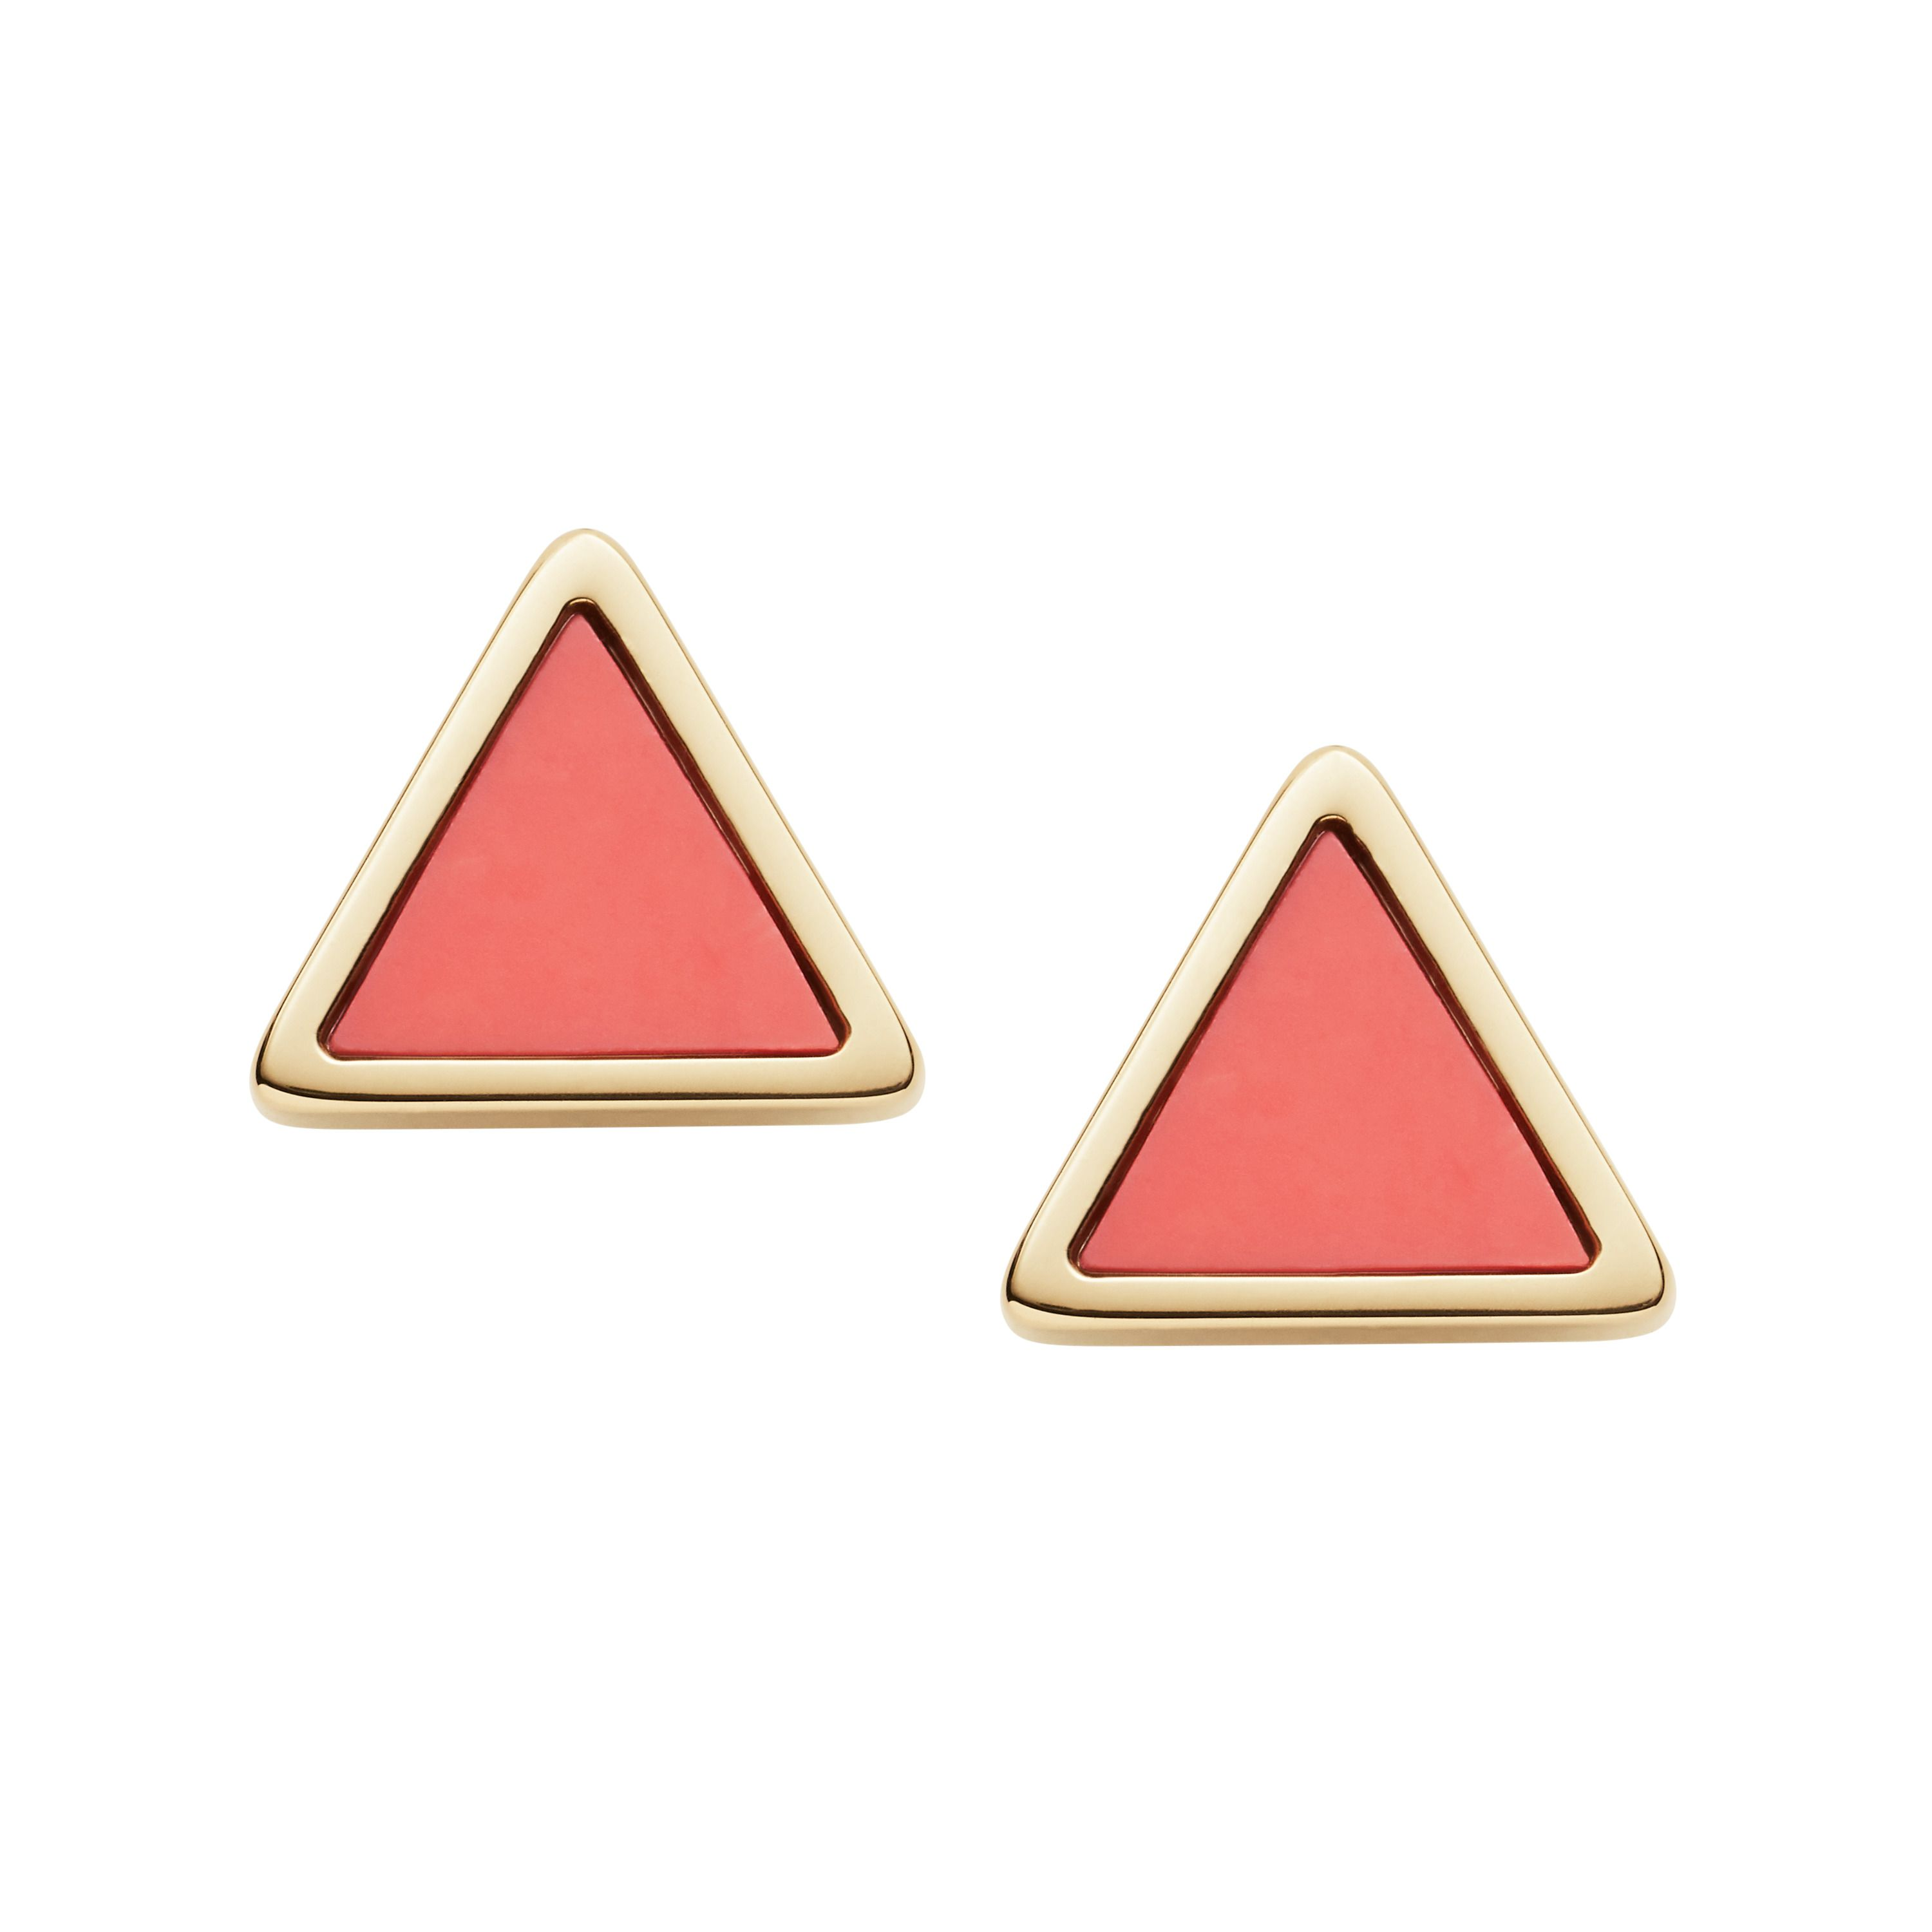 Fossil Triangle Coral Semi-Precious Earrings, Gold